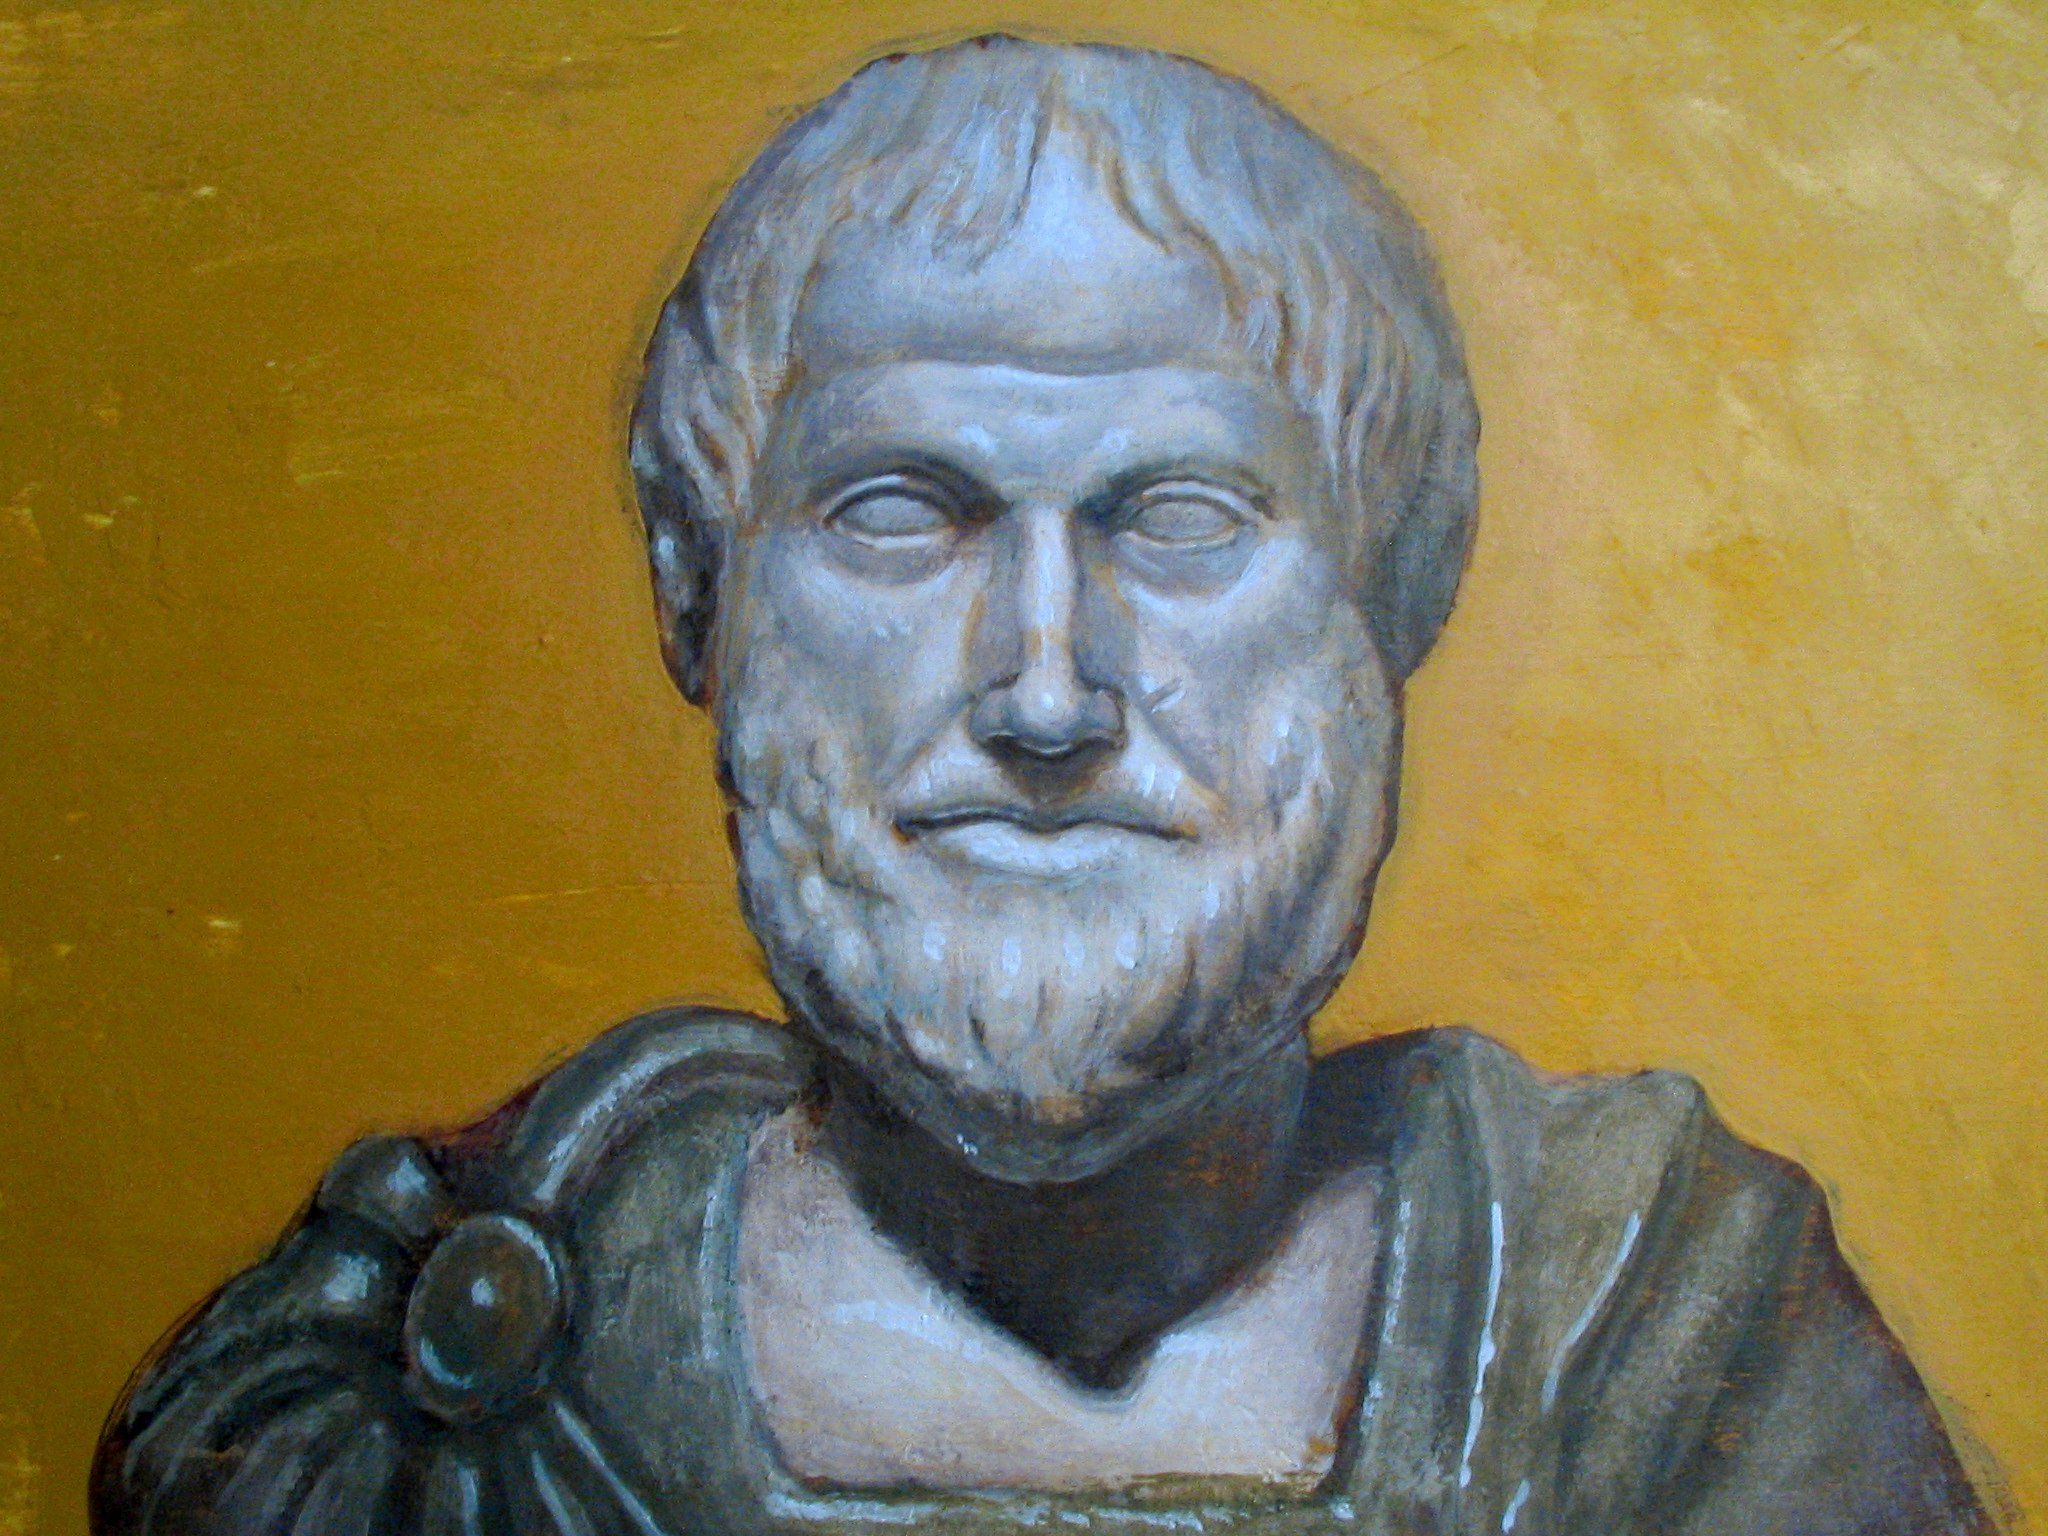 a biography of aristotle and his contributions to science Top 10 contribution of aristotle to put it out rather bluntly, it is true that while aristotle established new frontiers in the field of life sciences, his escapades in physics fall shorter in comparison aristotle was the first to write a book that dealt with the specifics of psychology - his book de anima.